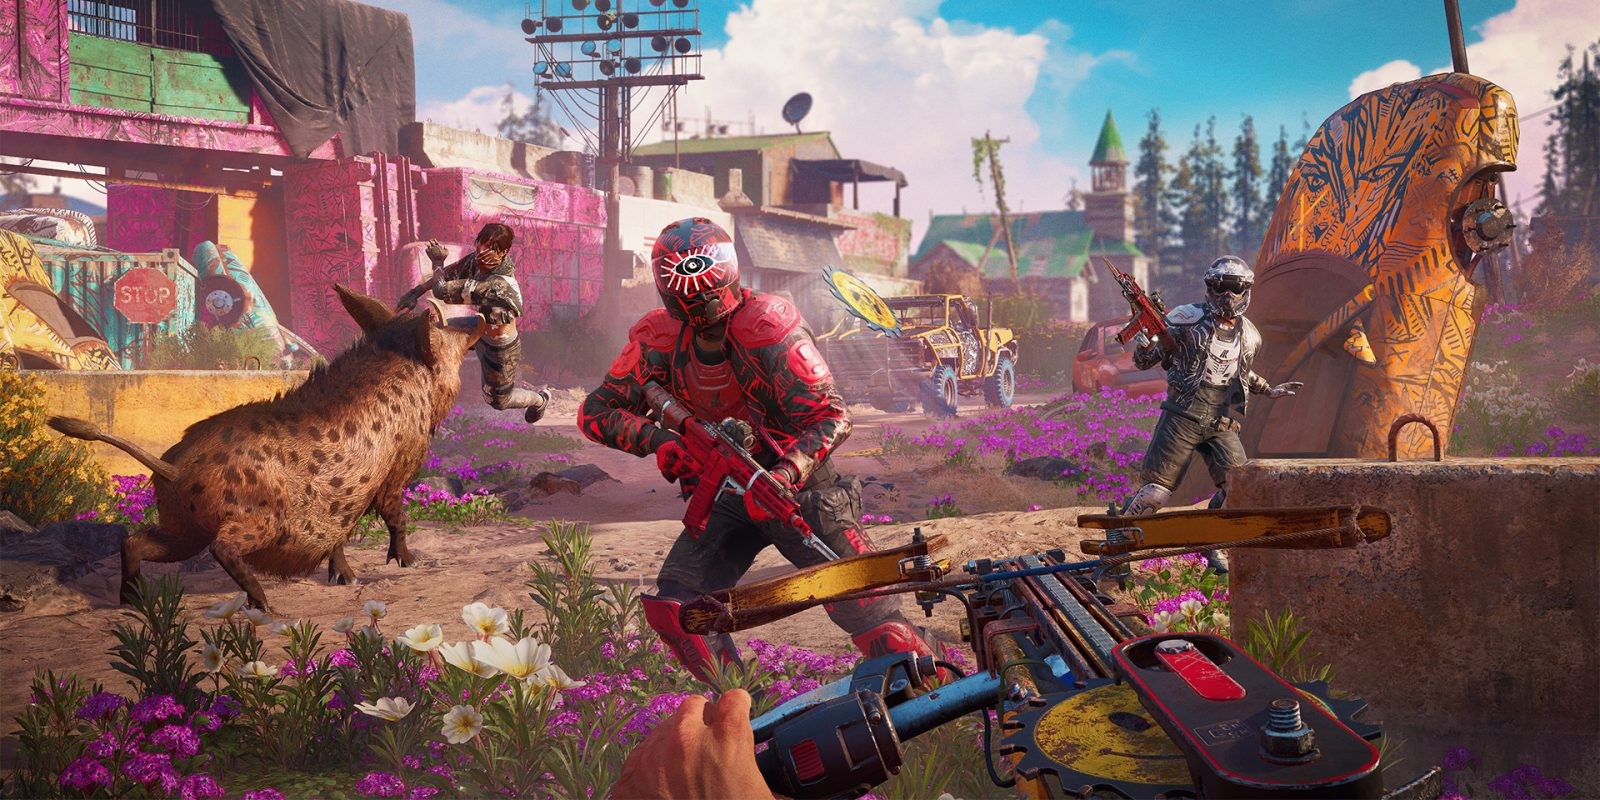 Today's Best Game Deals: Far Cry New Dawn $20, Dragon Quest XI $30, more